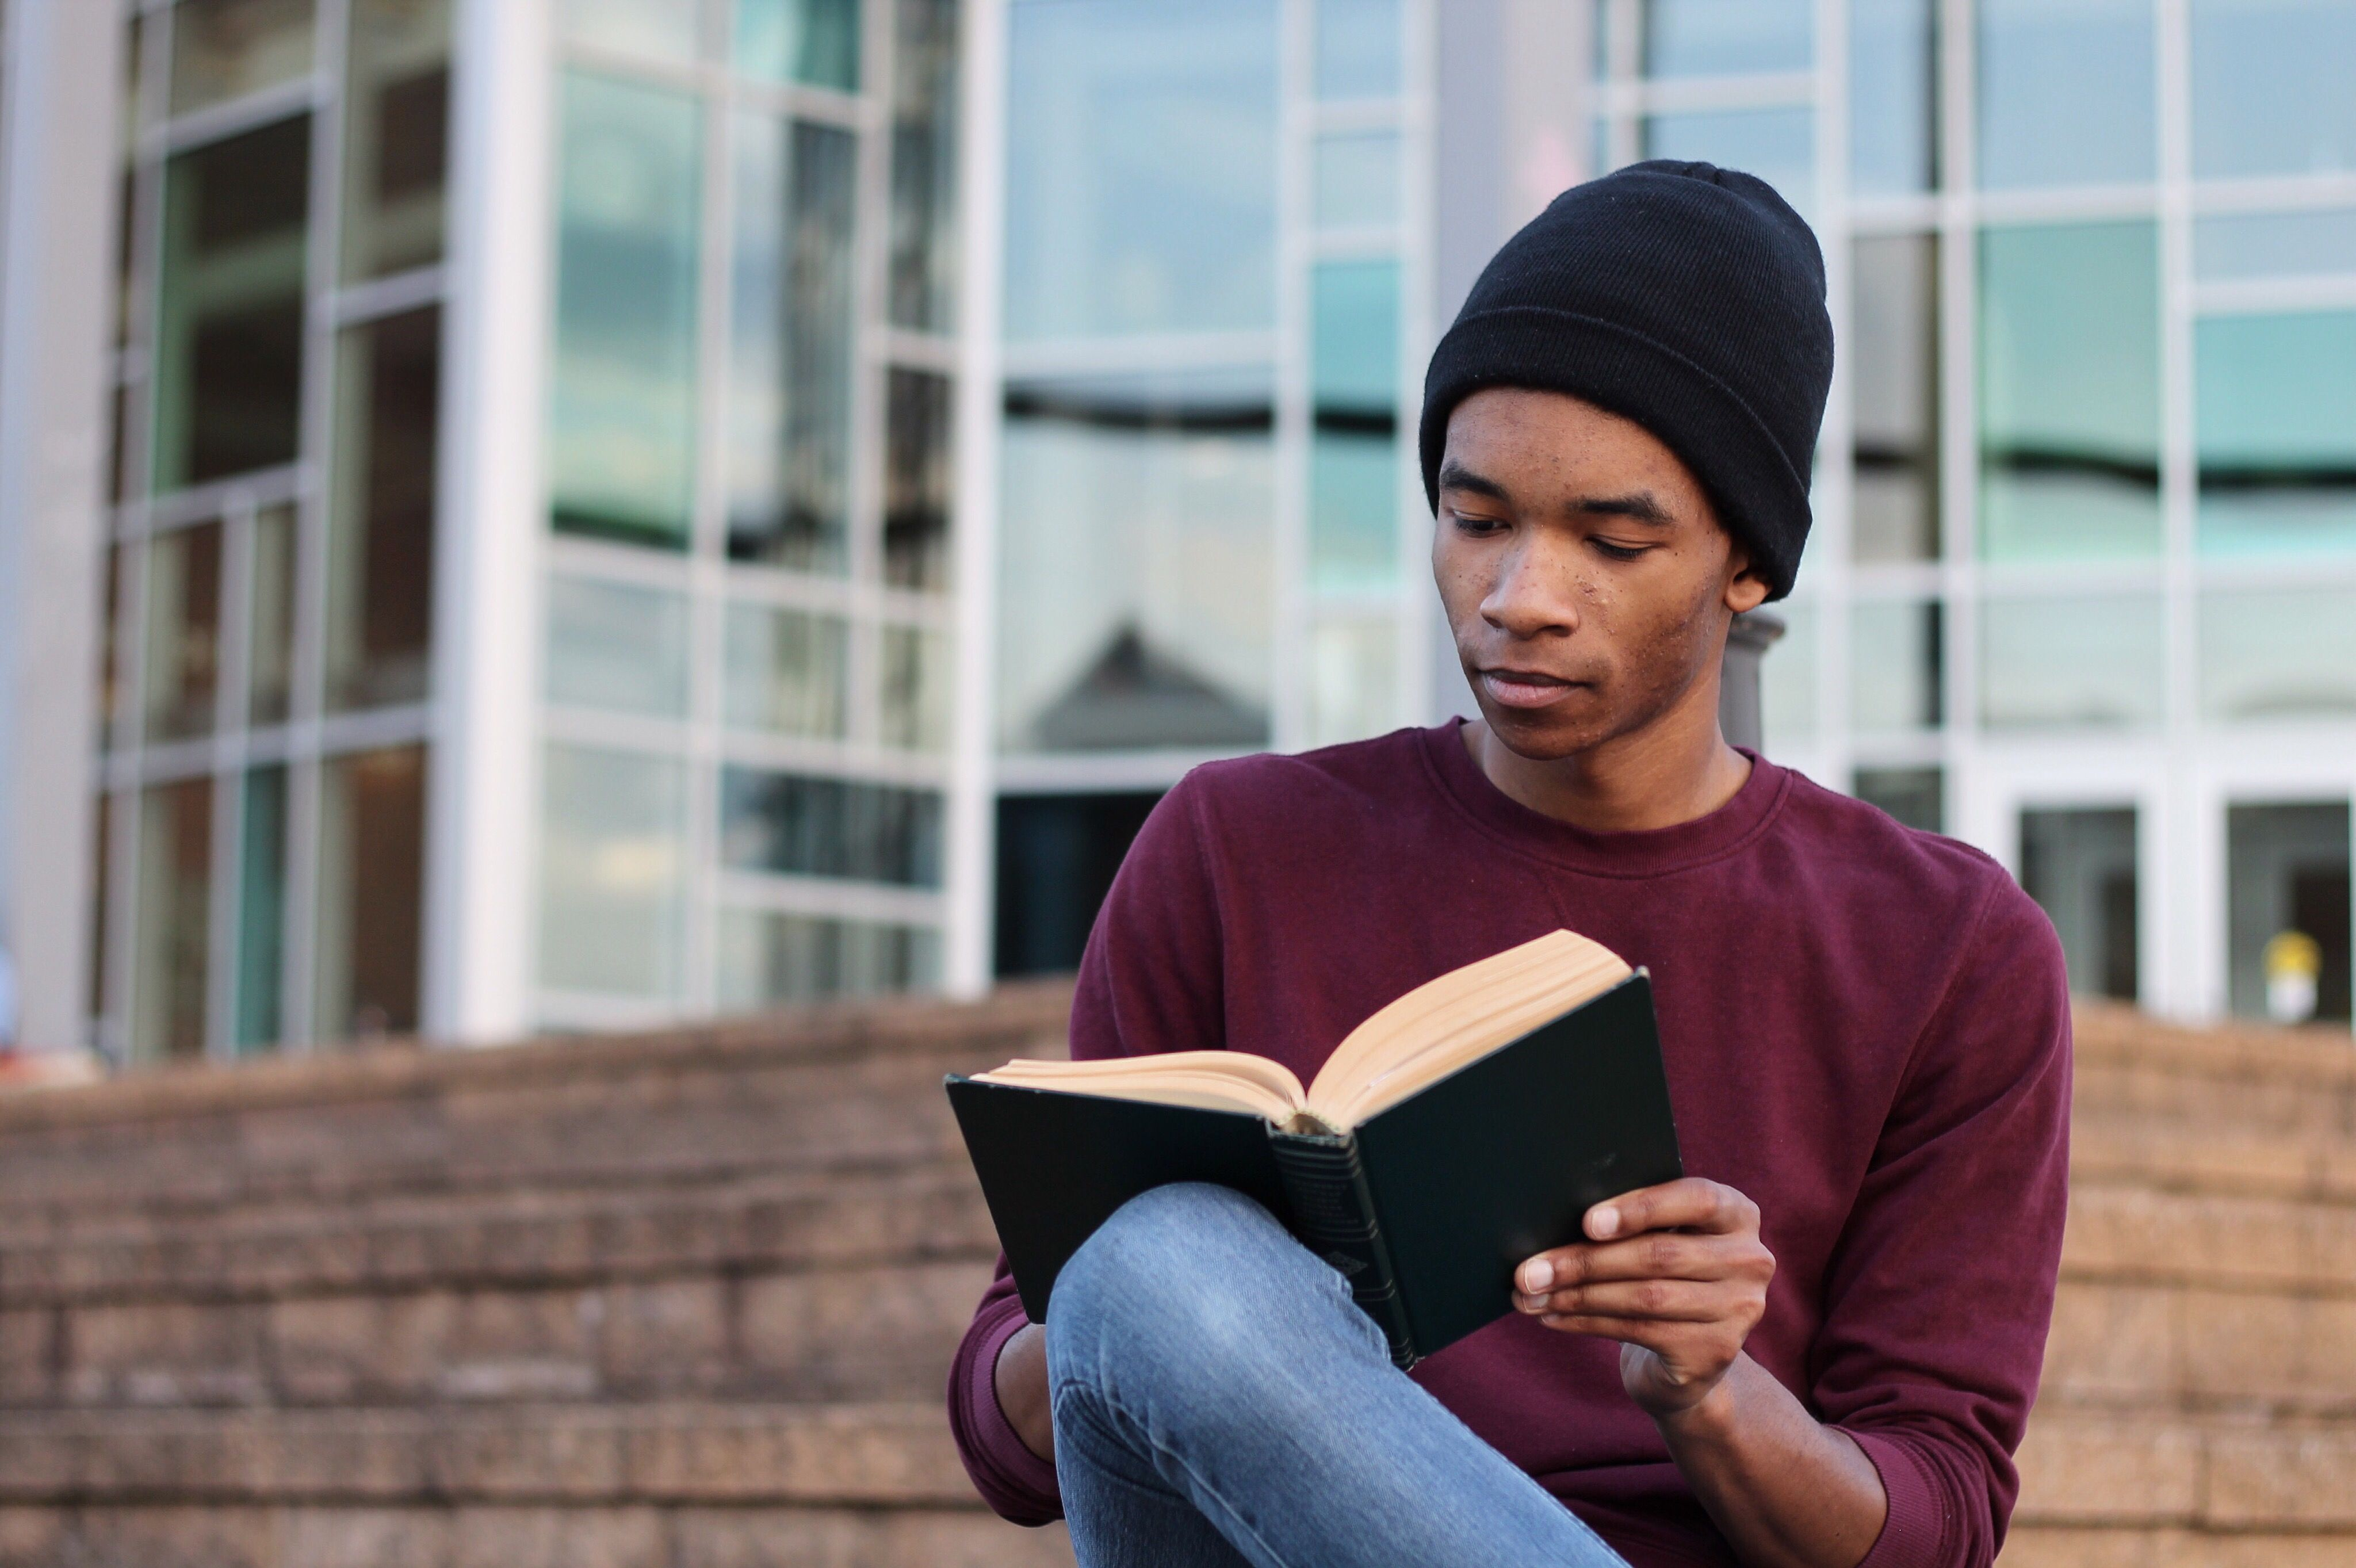 Student reading a book on campus.